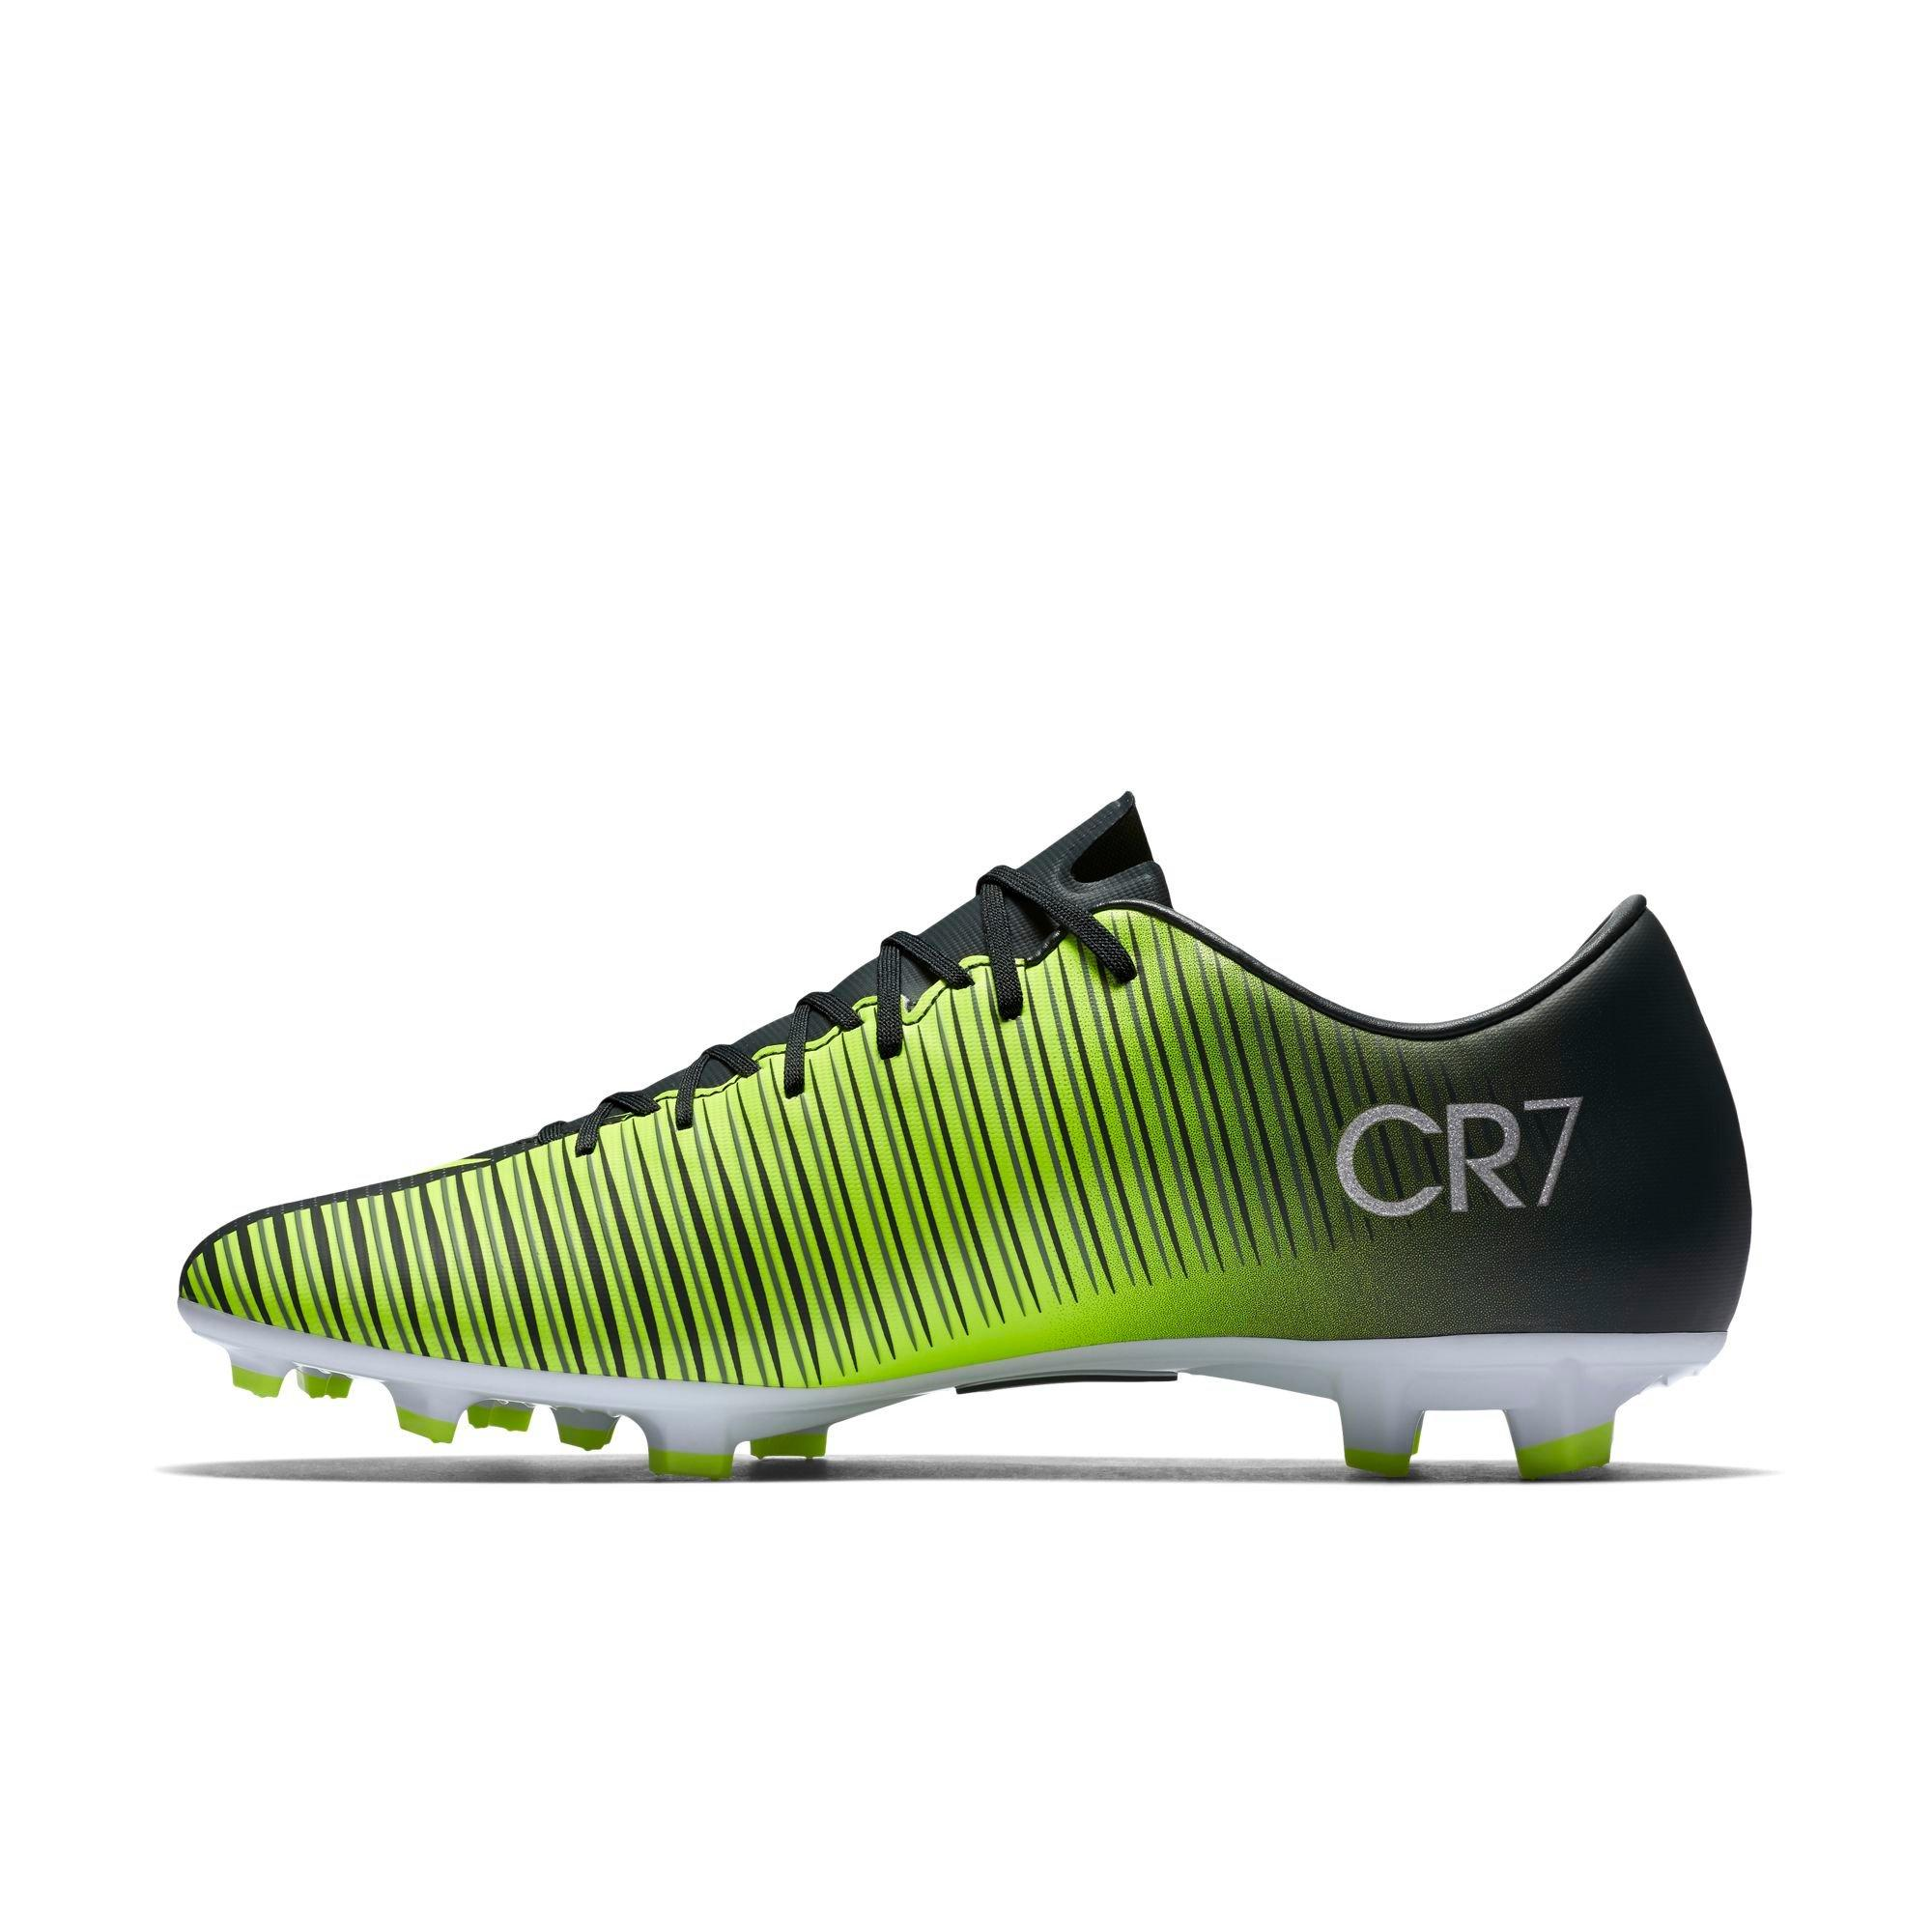 Nike Mercurial Victory VI CR7 FG Men\u0027s Soccer Cleat - Main Container Image 2